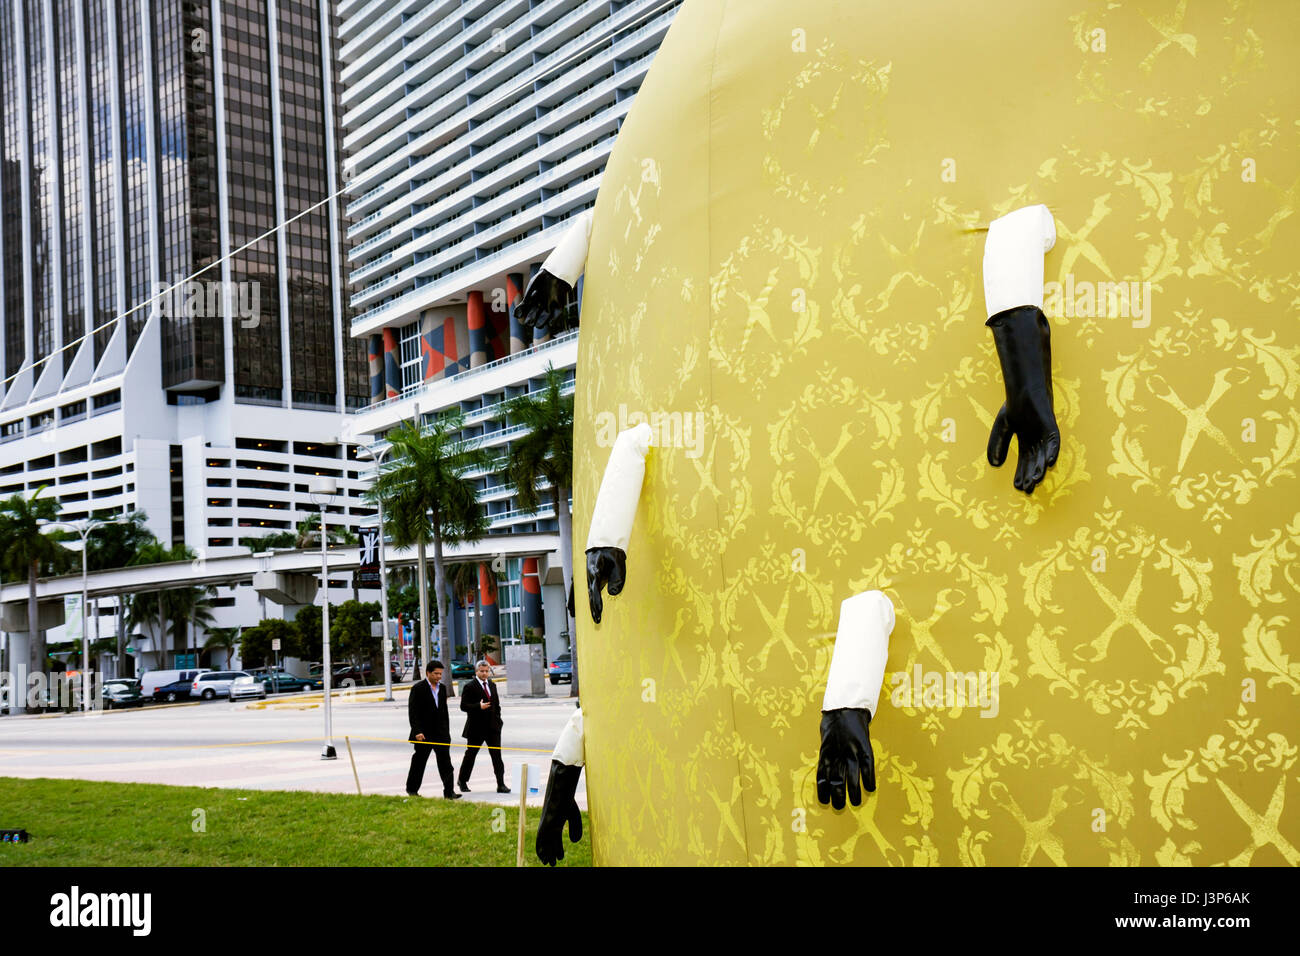 Miami Florida Biscayne Boulevard Art Basel Giants in the City Stock ...